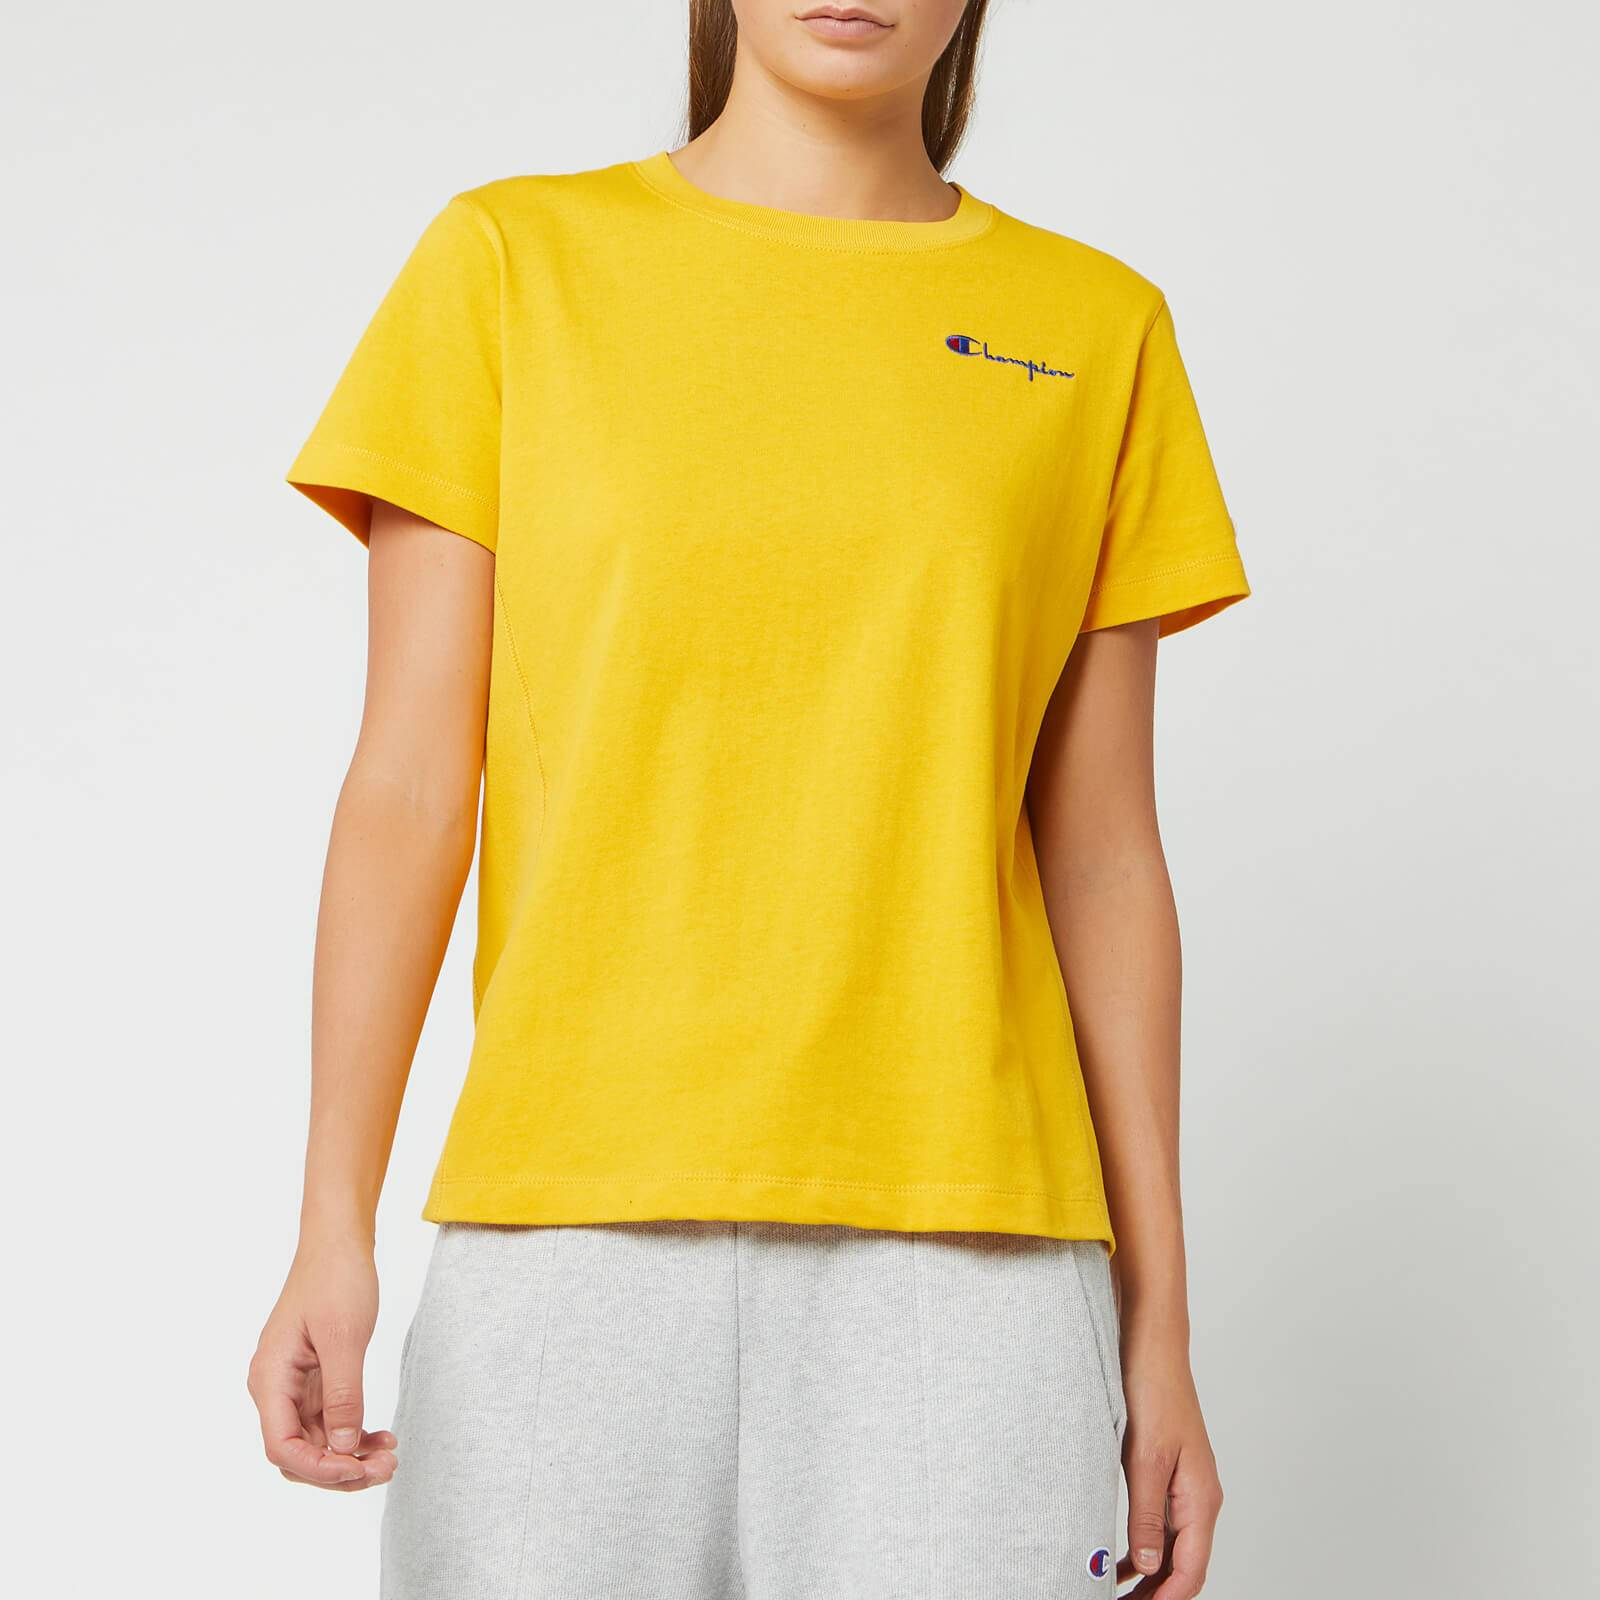 Champion Women's Small Script Crew Neck Short Sleeve T-Shirt - Golden Rod - XS